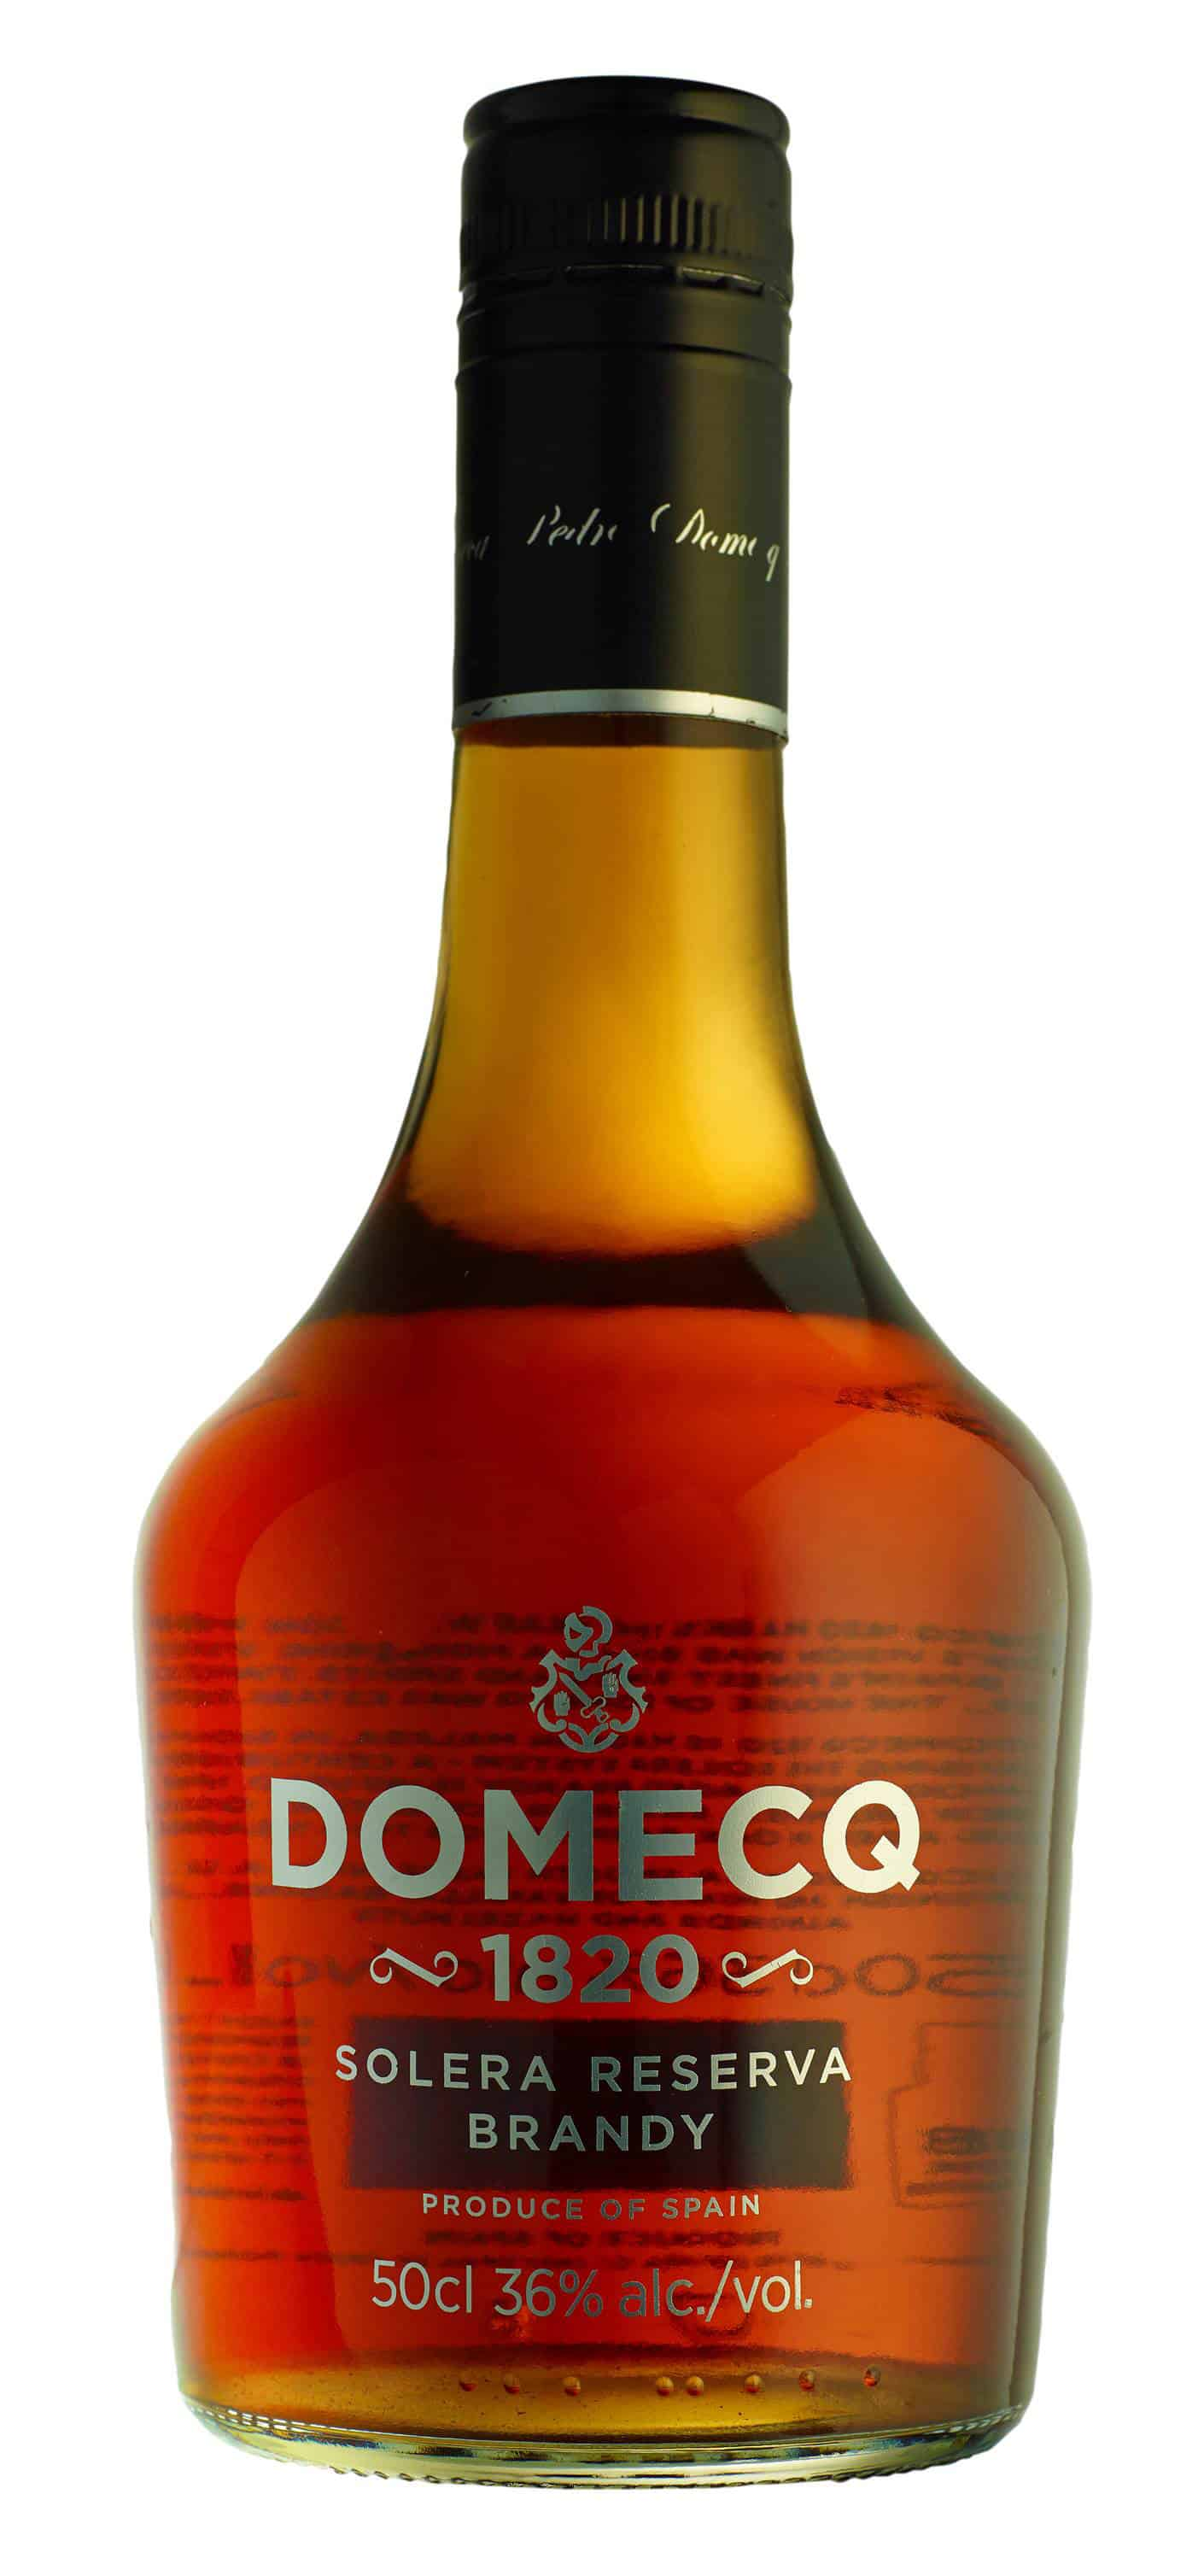 Domecq Bottle Shot co